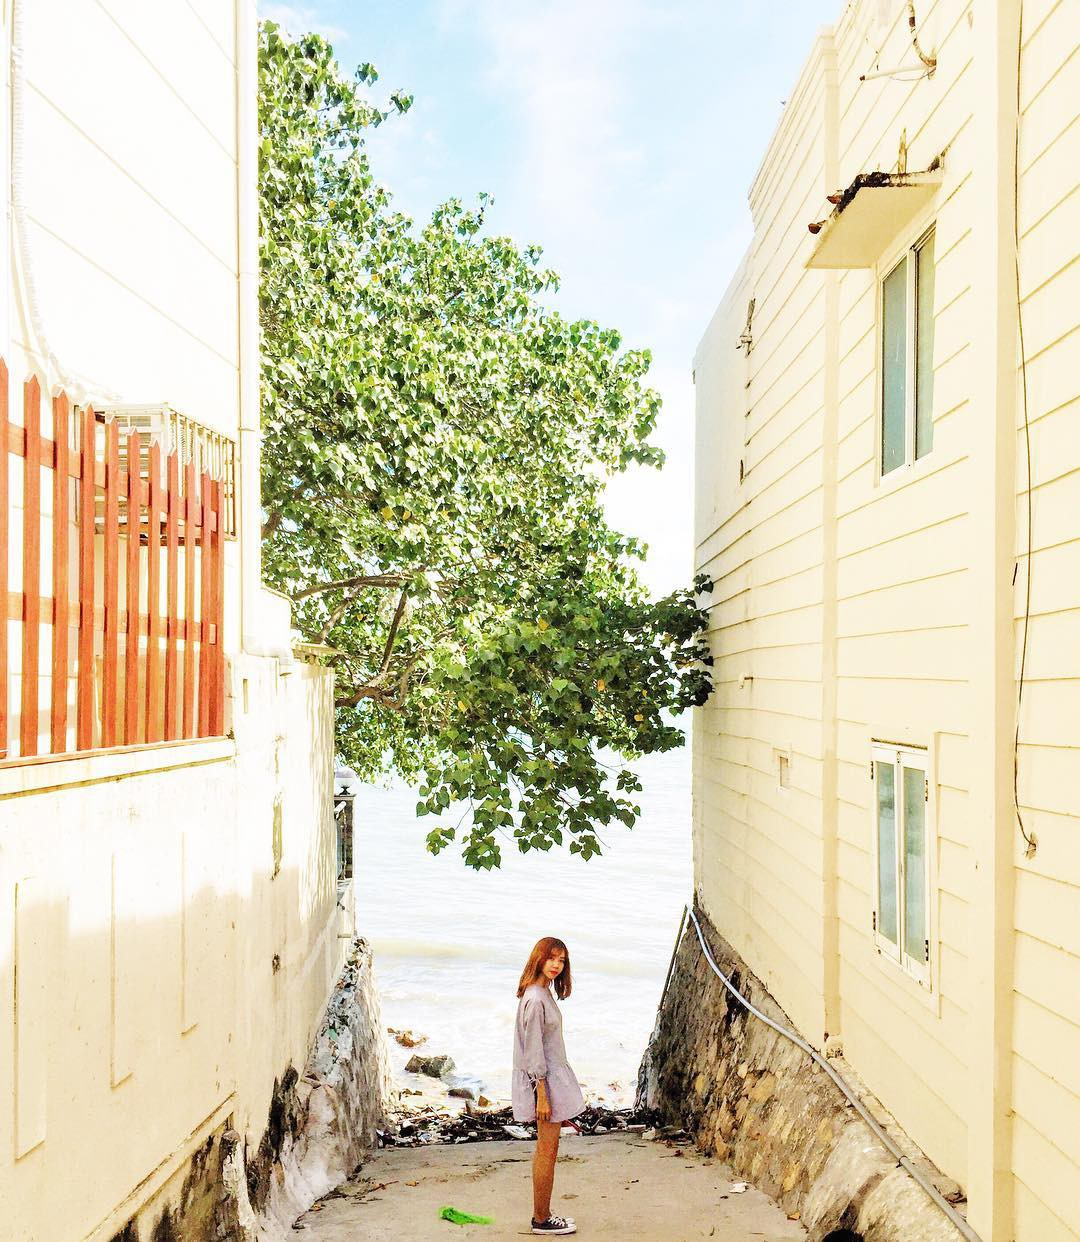 A girl posing along the alley leading to a beach